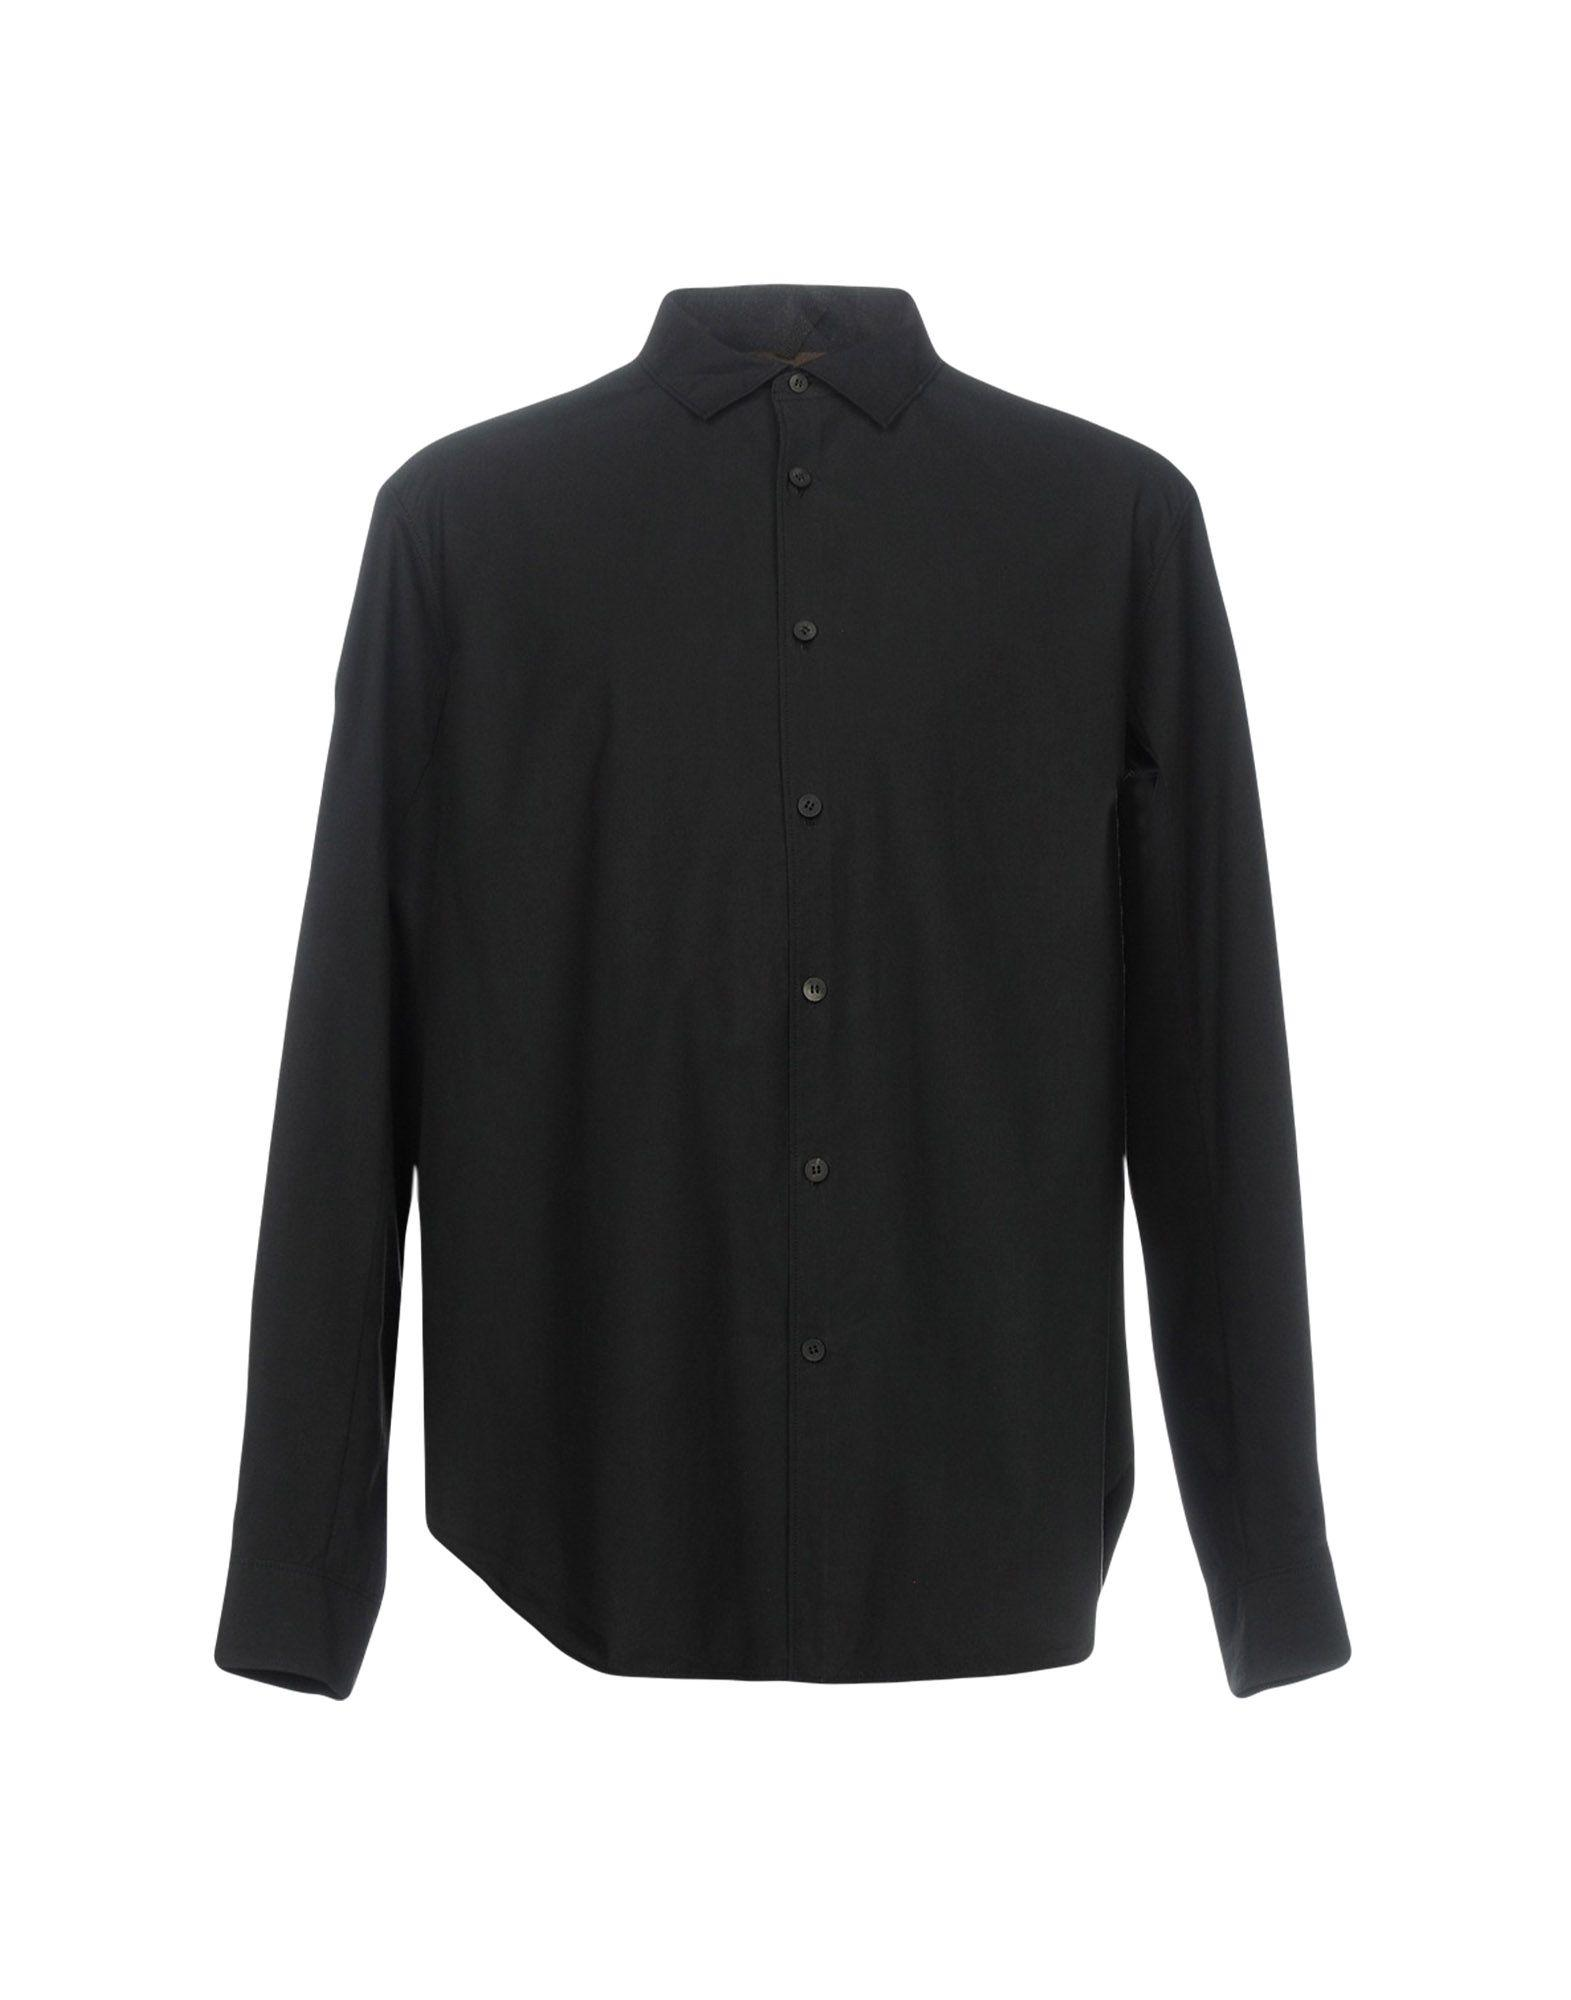 Ziggy Chen Solid Color Shirt In Black